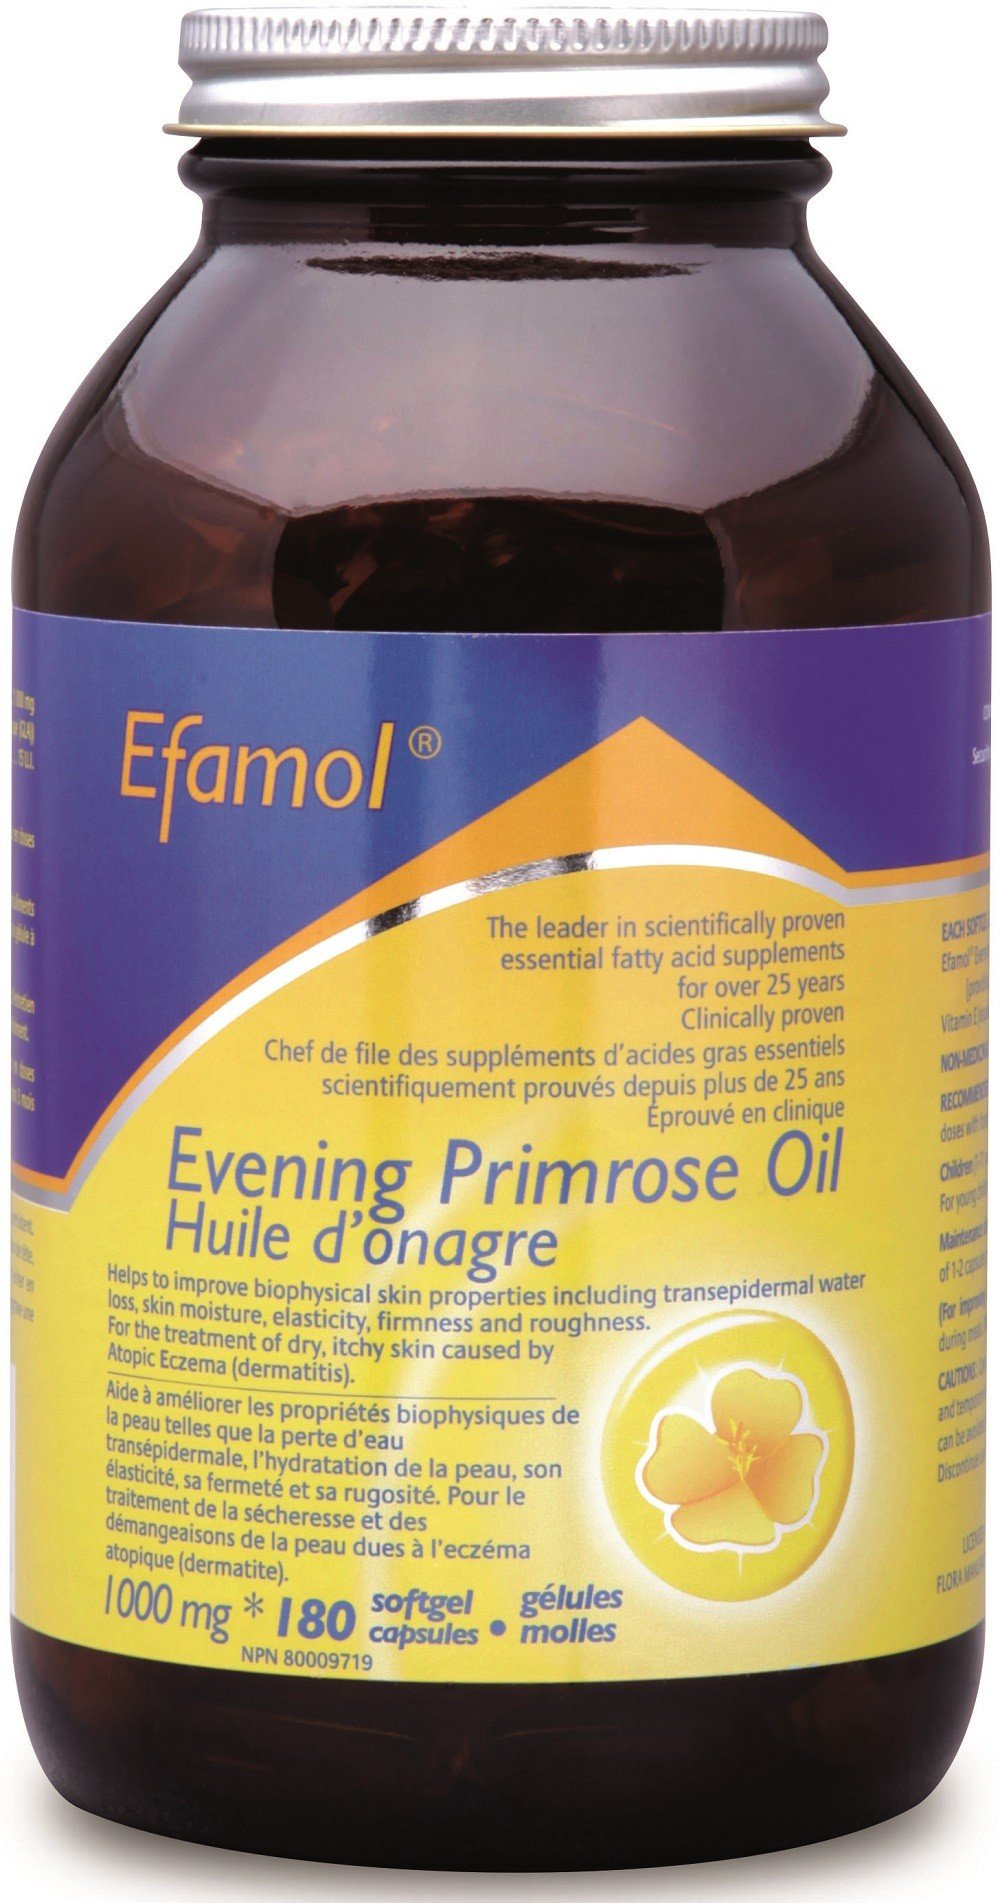 Want Beautiful Skin? Use Primrose Oil!